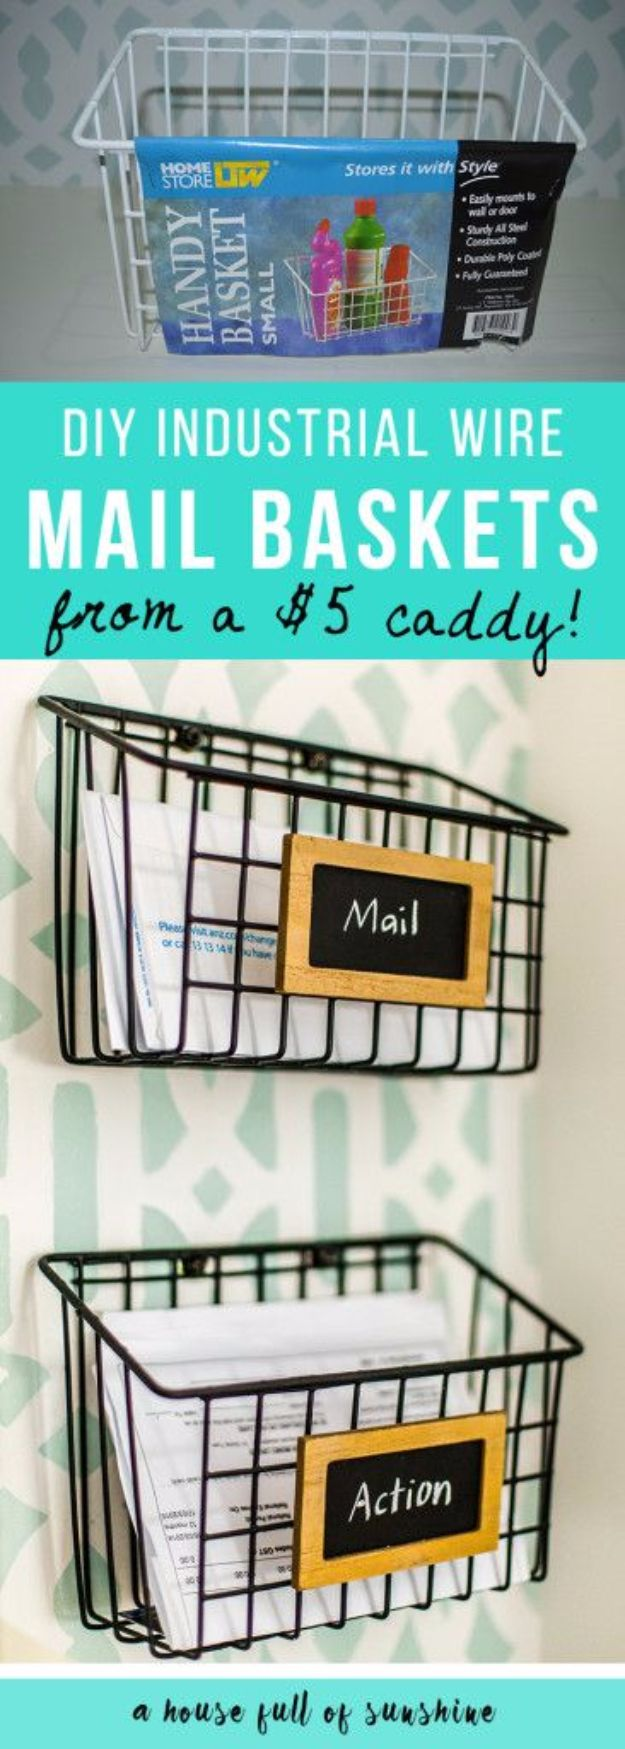 31 DIY Crafts Made With Baskets